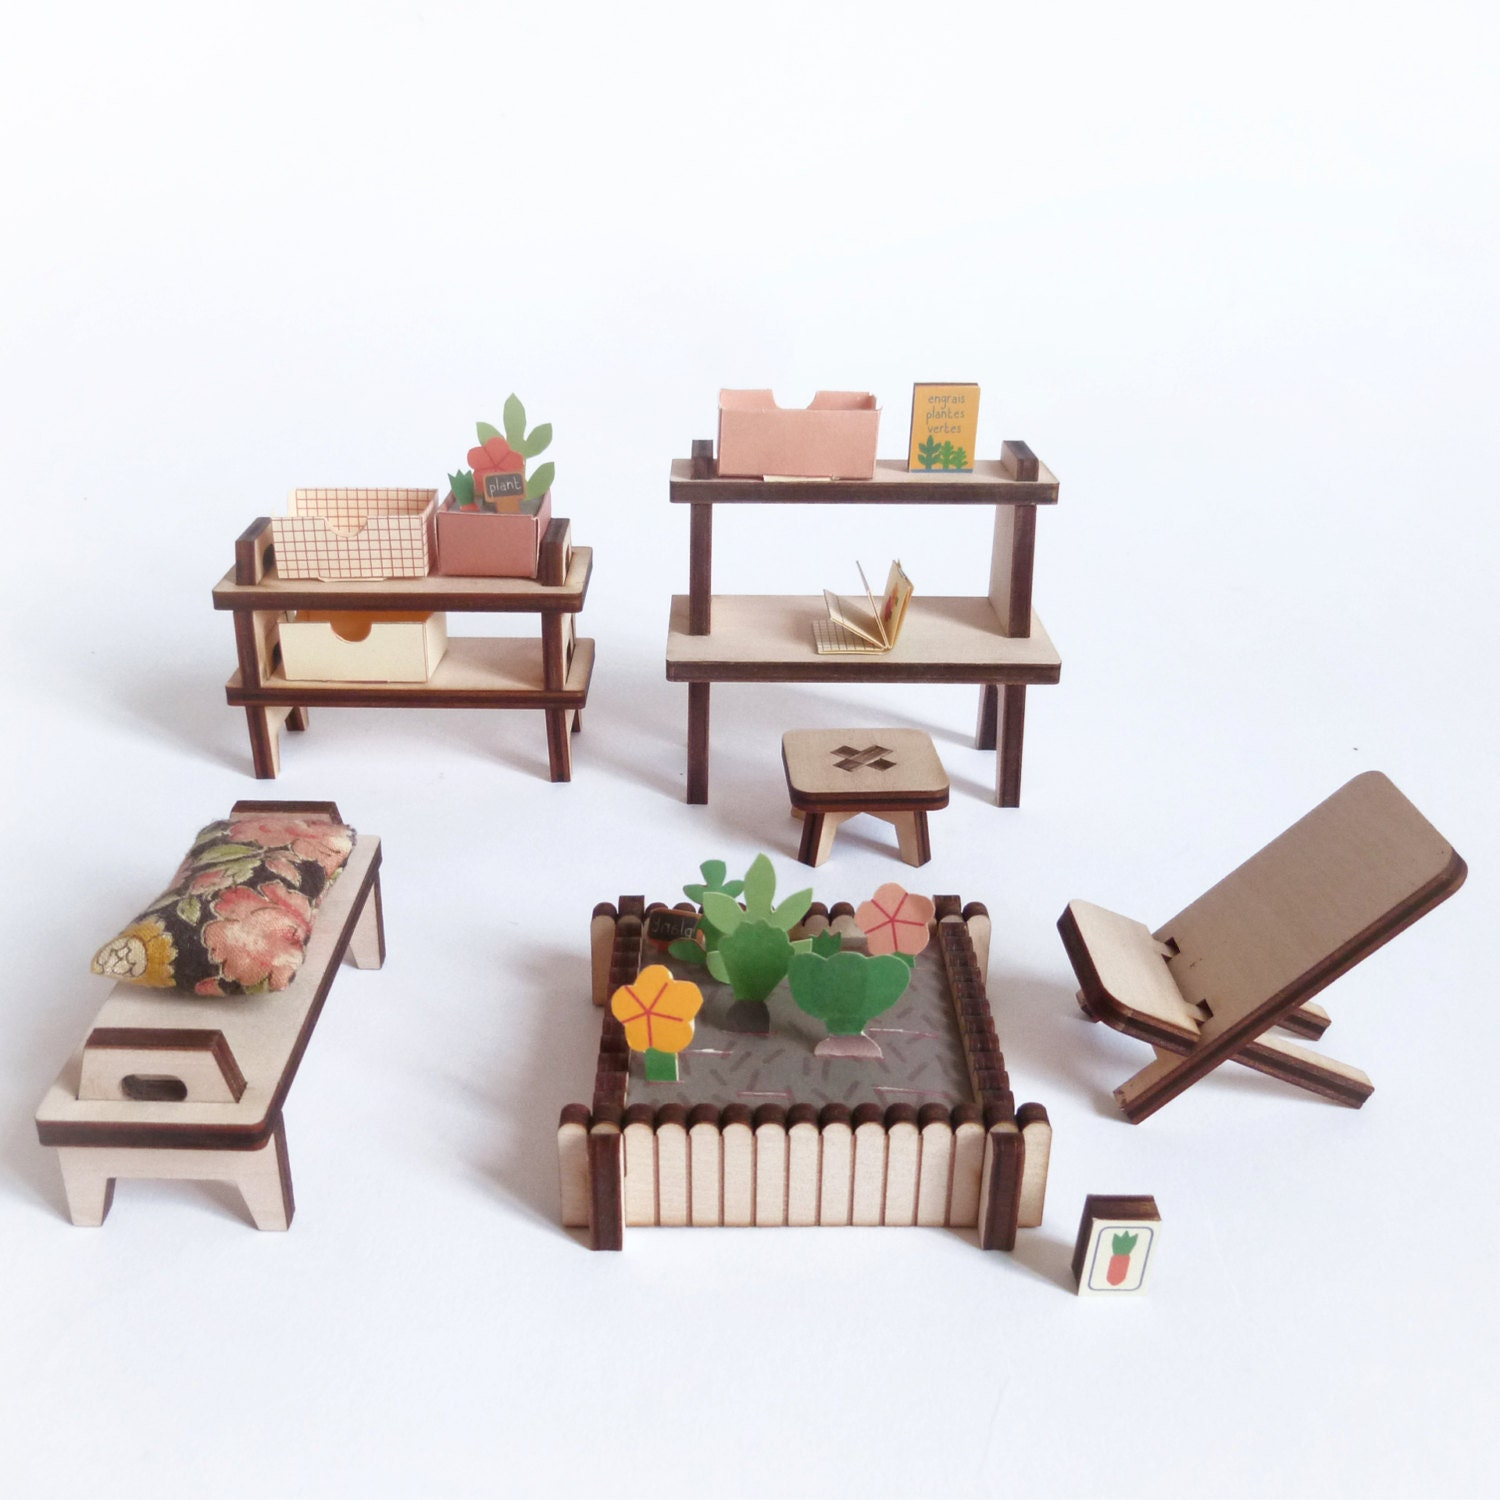 Winter garden wooden and paper furniture kit for doll 39 s - Paper furniture ...